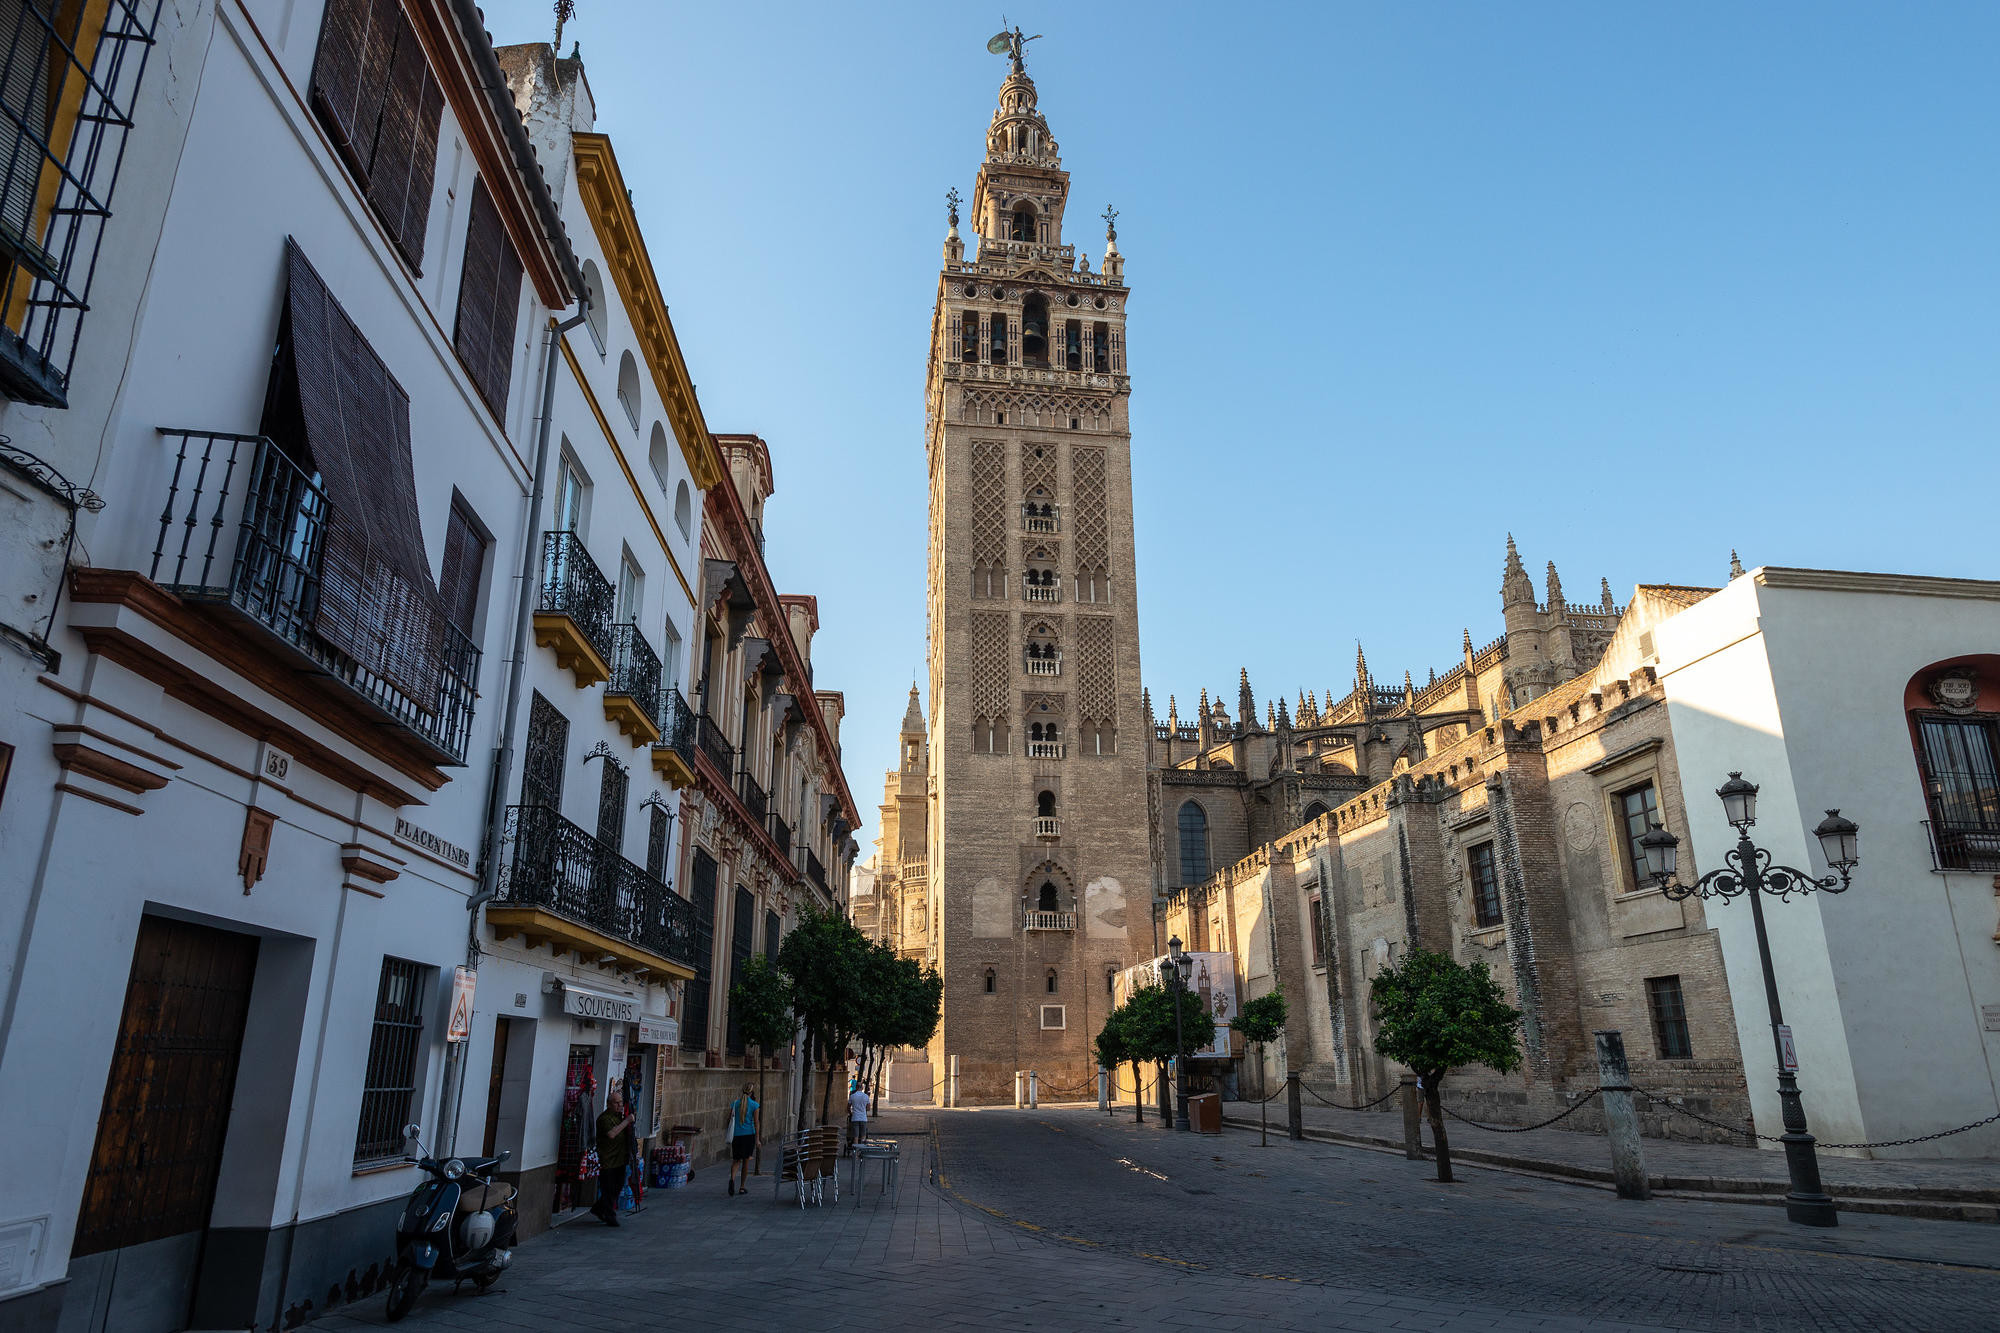 Seville cathedral from the street